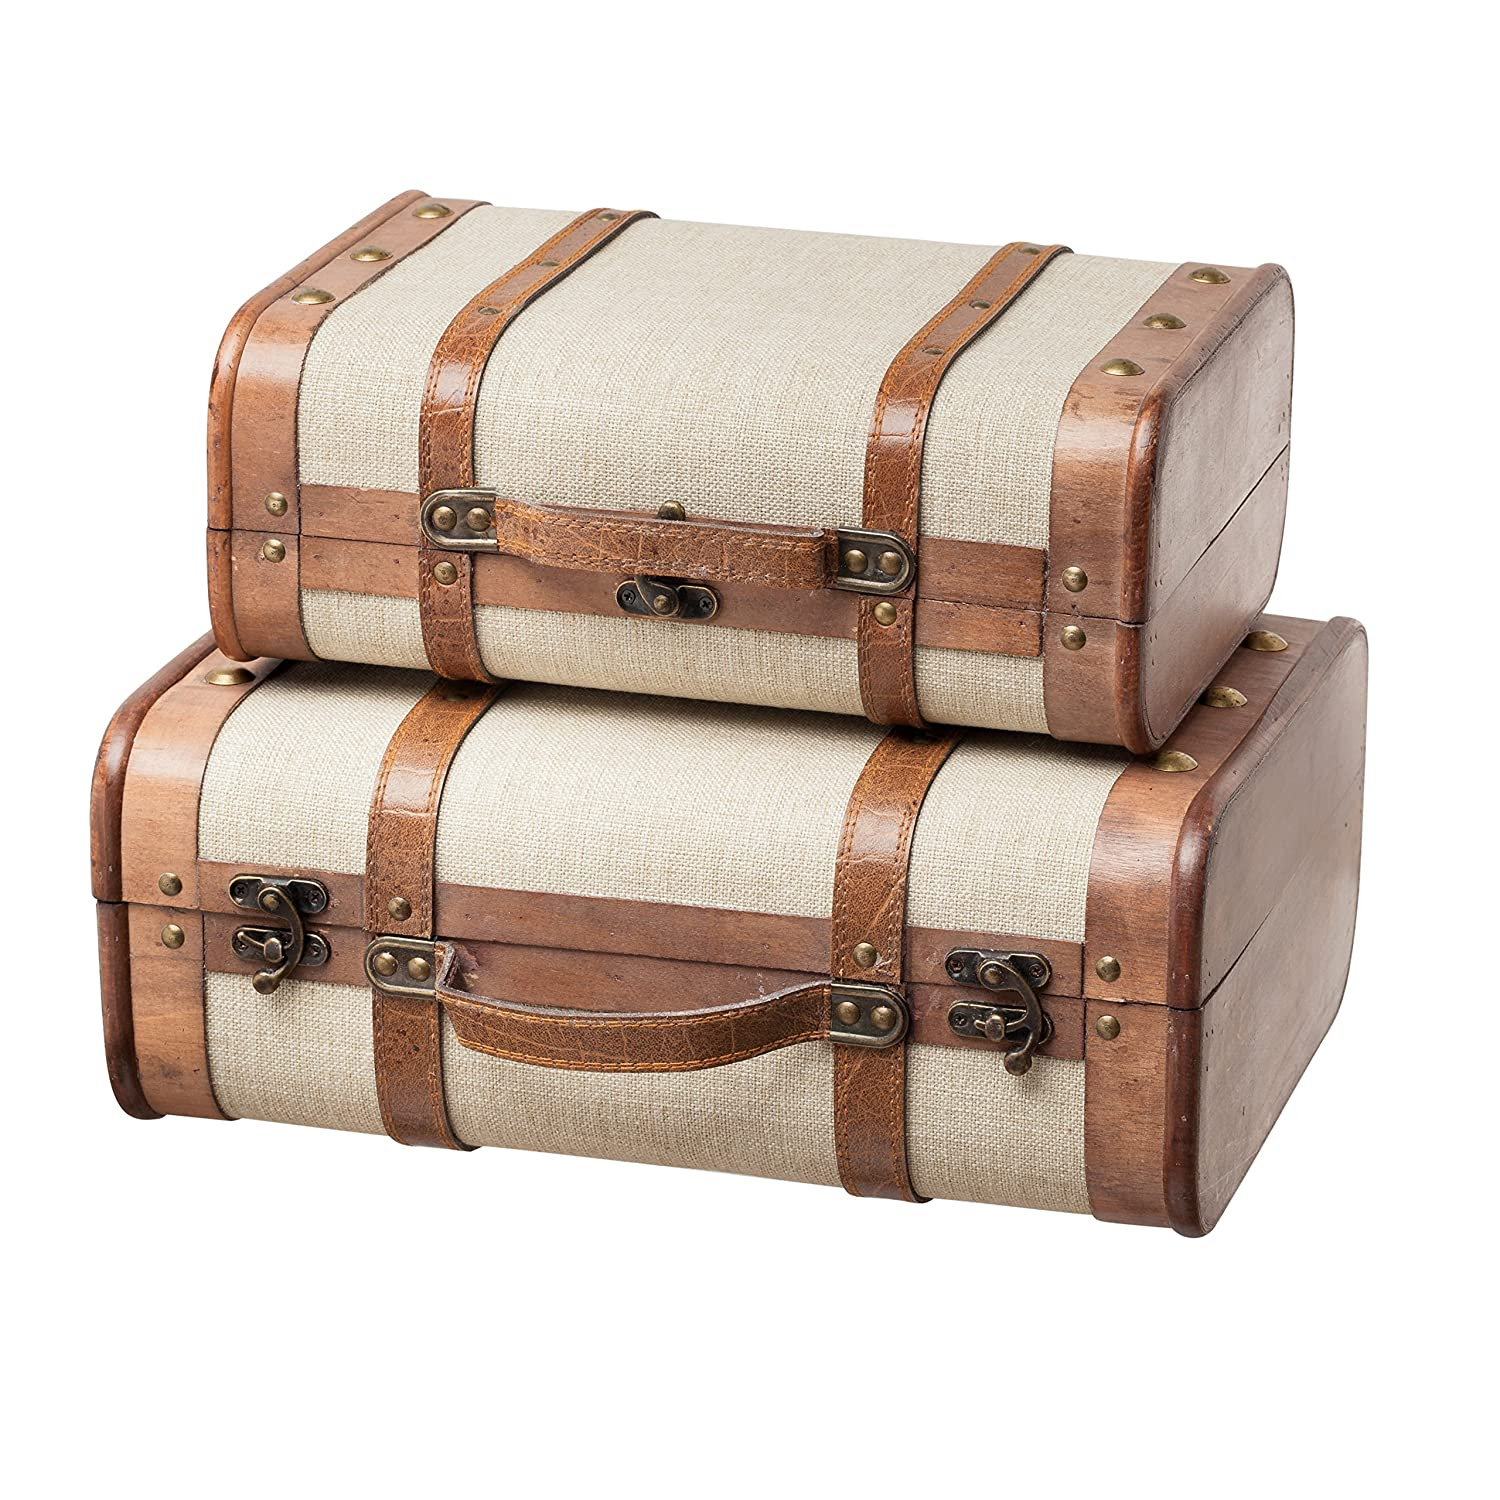 SLPR Decorative Suitcase with Straps (Set of 2, Beige) | Old-Fashioned Antique Vintage Style Nesting Trunks for Shelf Home Decor Birthday Parties Wedding Decoration Displays Crafts Photoshoots